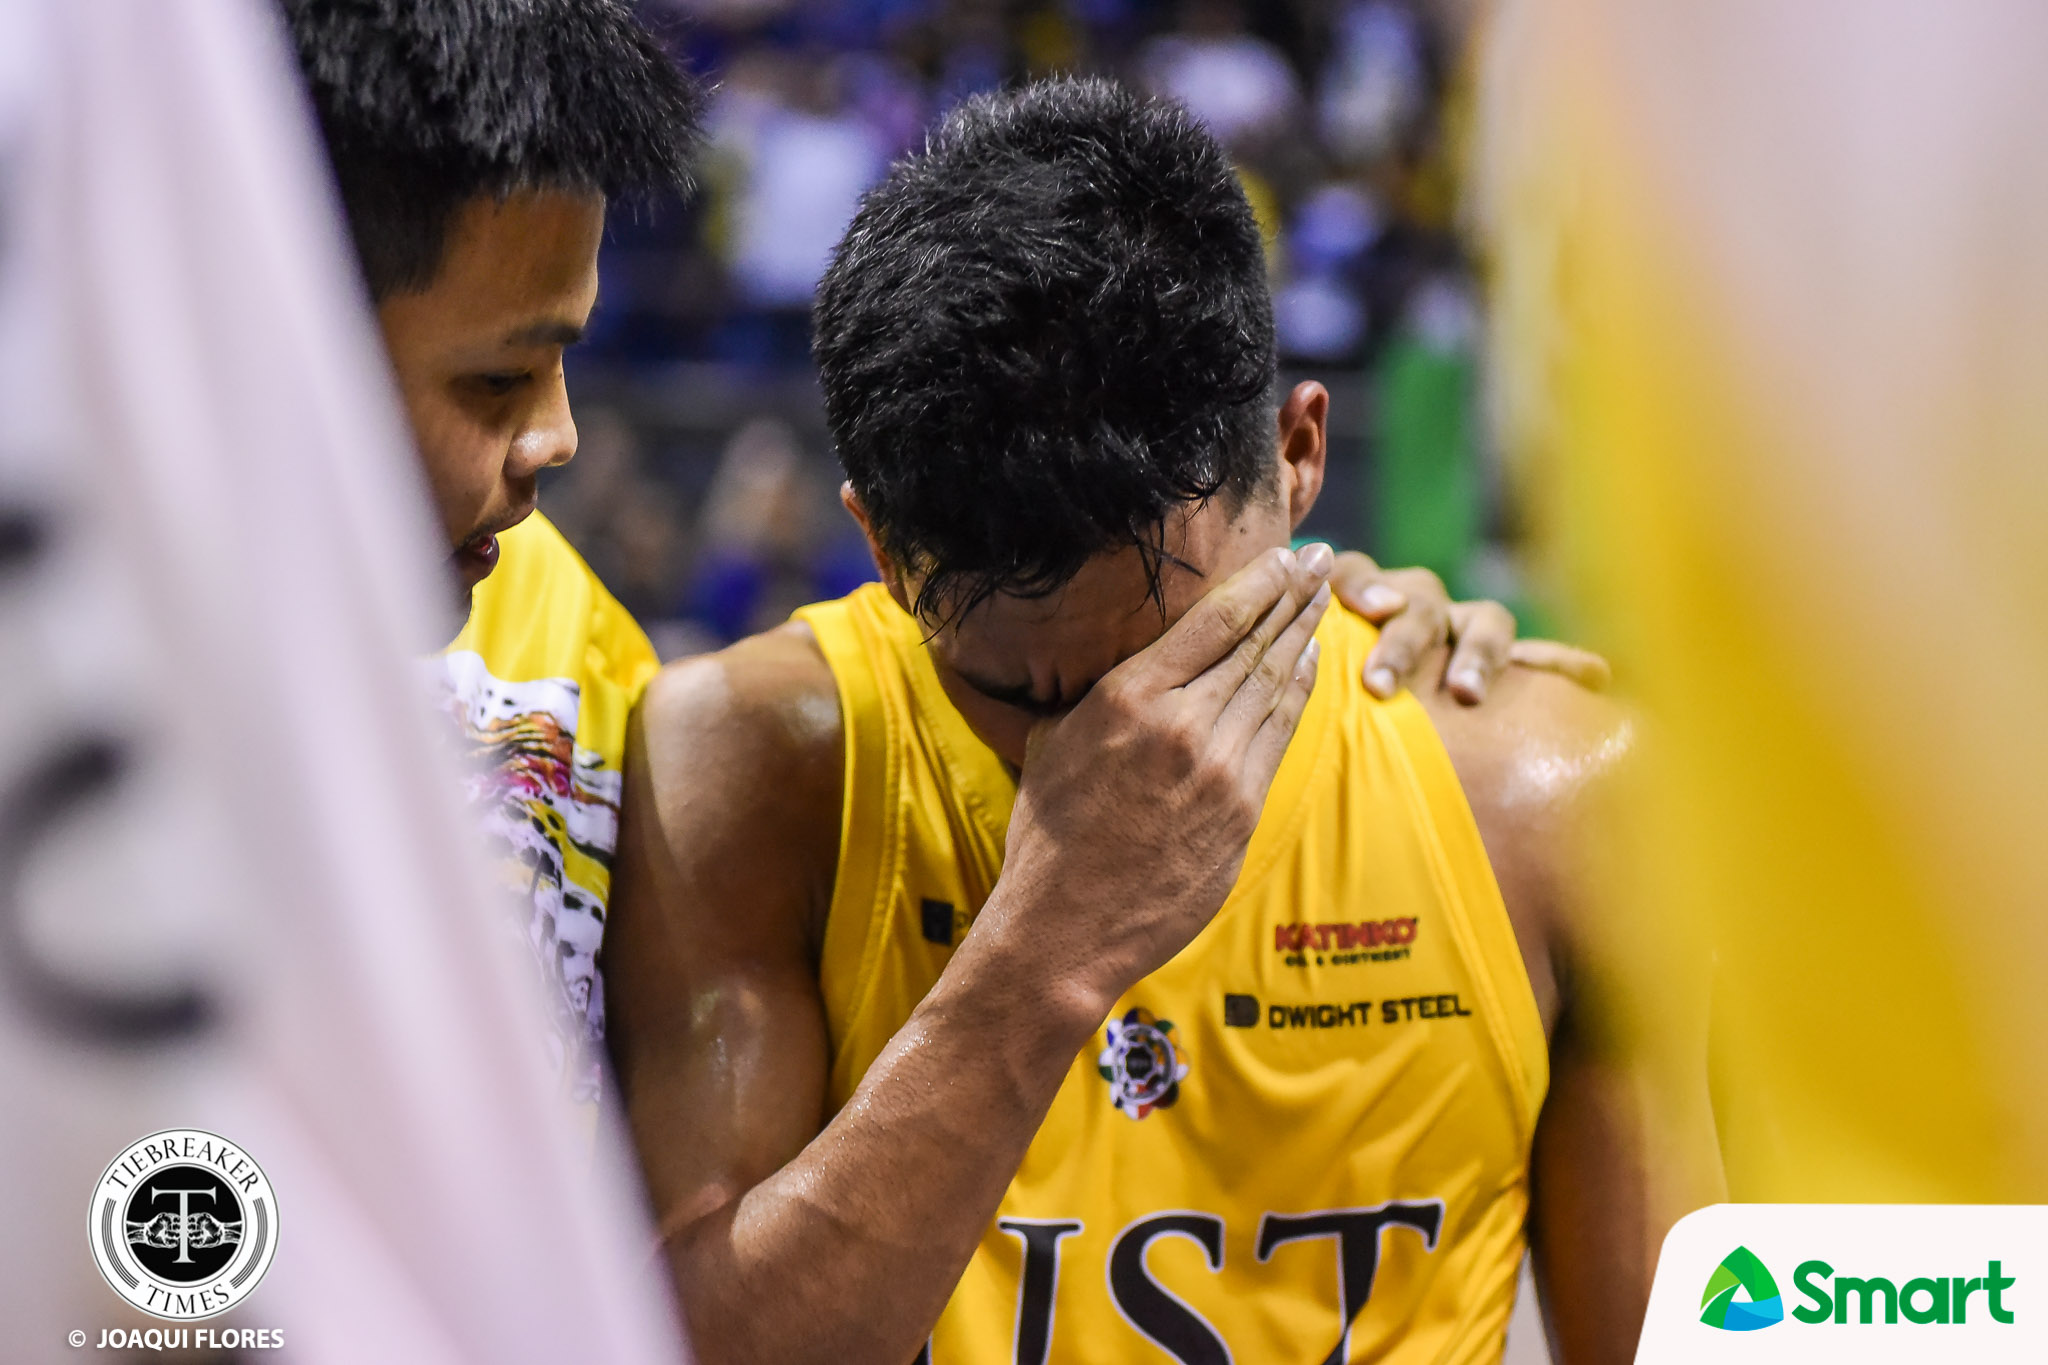 UAAP-82-MBB-Finals-G1-ADMU-vs.-UST-Nonoy-3382 Fast and Furious tandem with Mark Nonoy excites Evan Nelle Basketball DLSU News UAAP  - philippine sports news